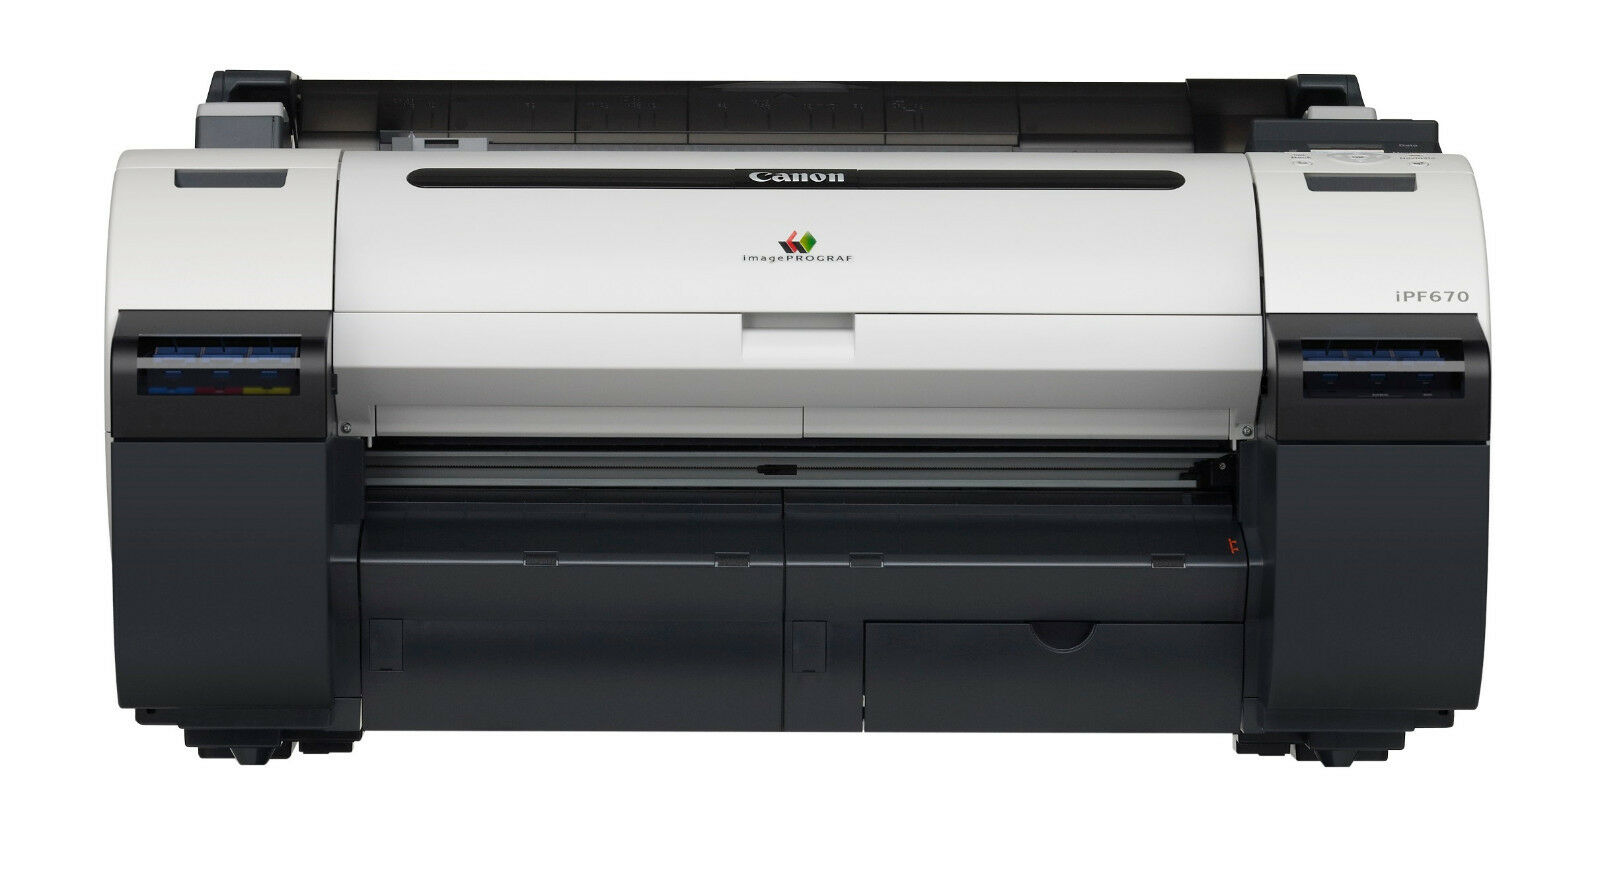 Canon IPF670 Inkjet Printer Plotter 24 Inch New With 1